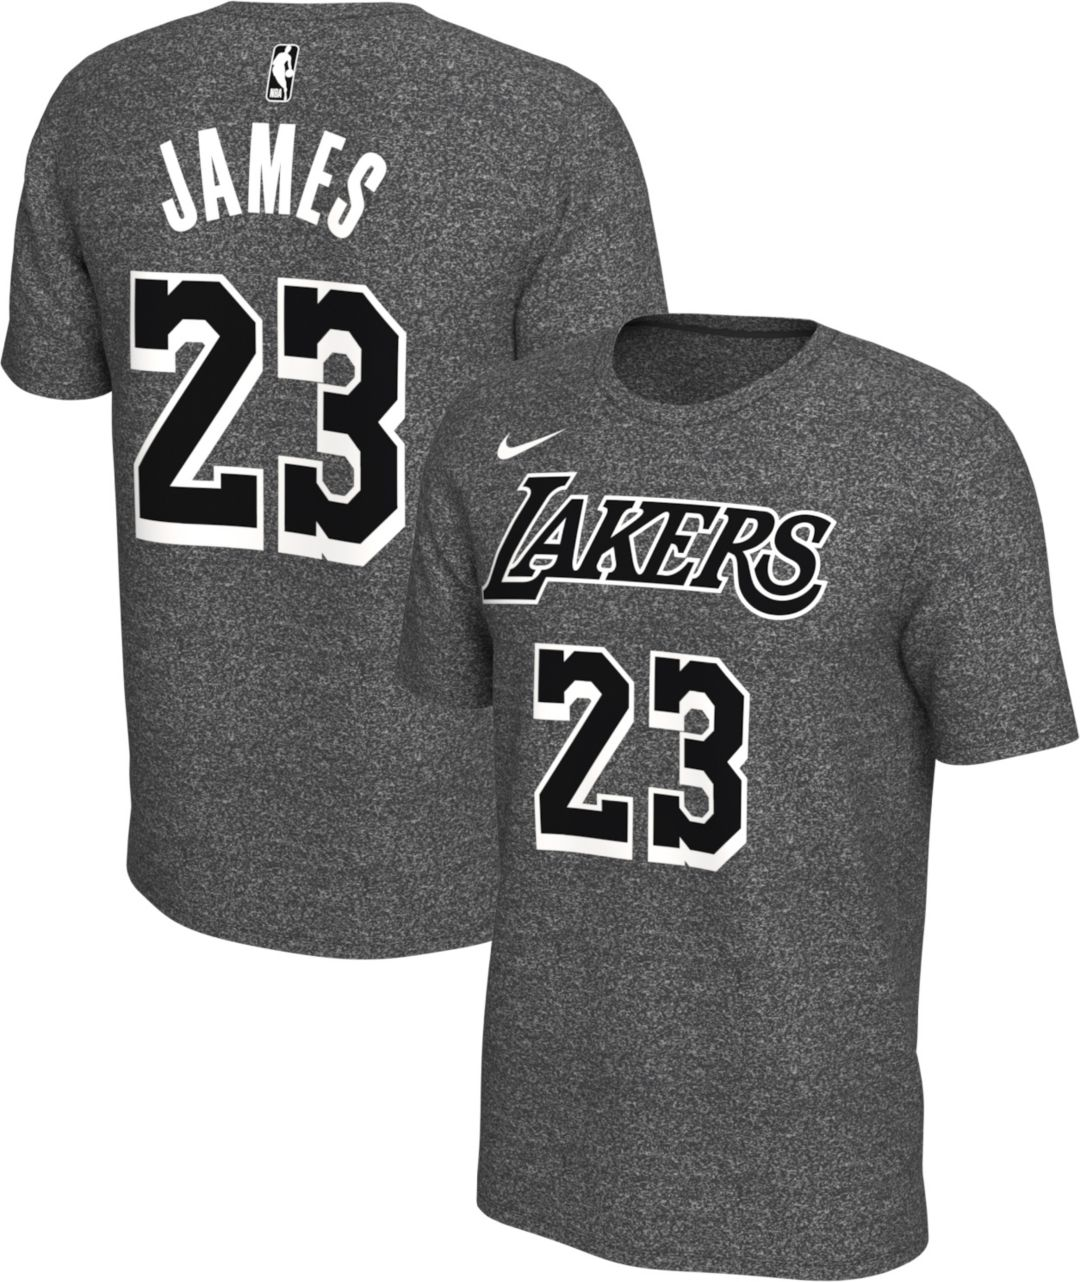 competitive price 2bf4d 3169b Nike Men's Los Angeles Lakers LeBron James #23 Dri-FIT Grey T-Shirt